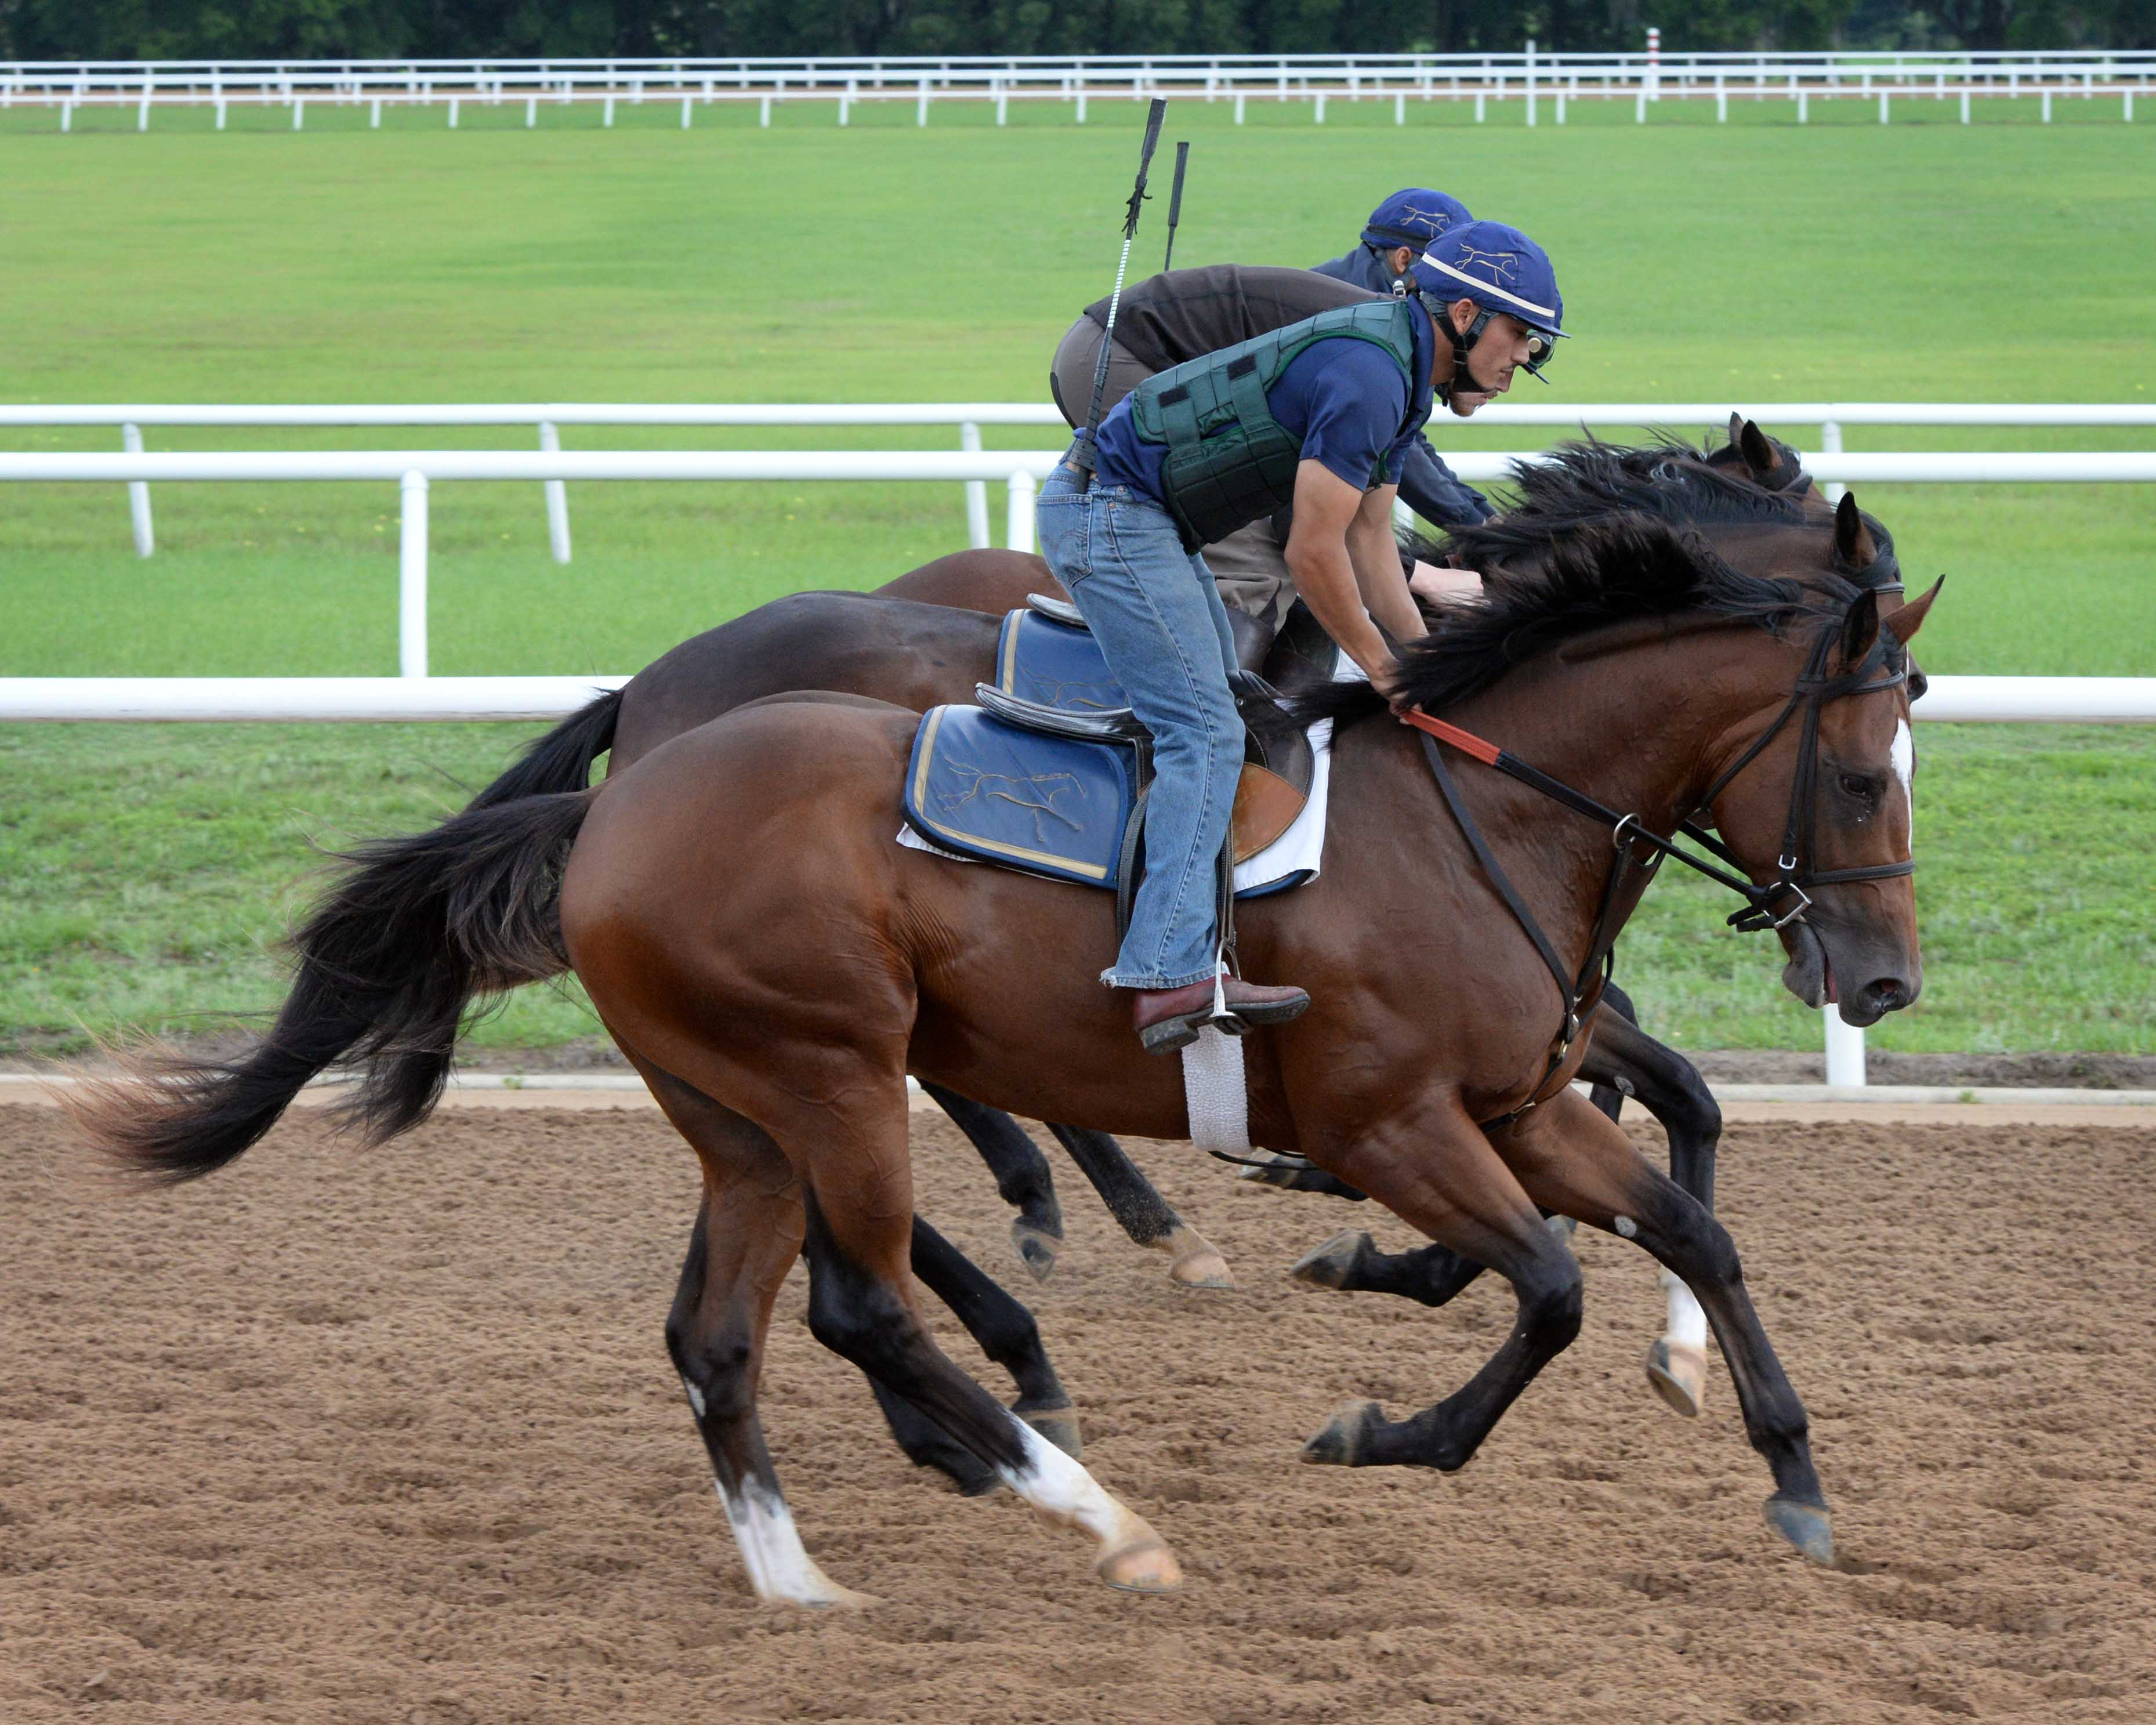 Two-Year-Olds training, Stonestreet Training Center 2015, 2 year old